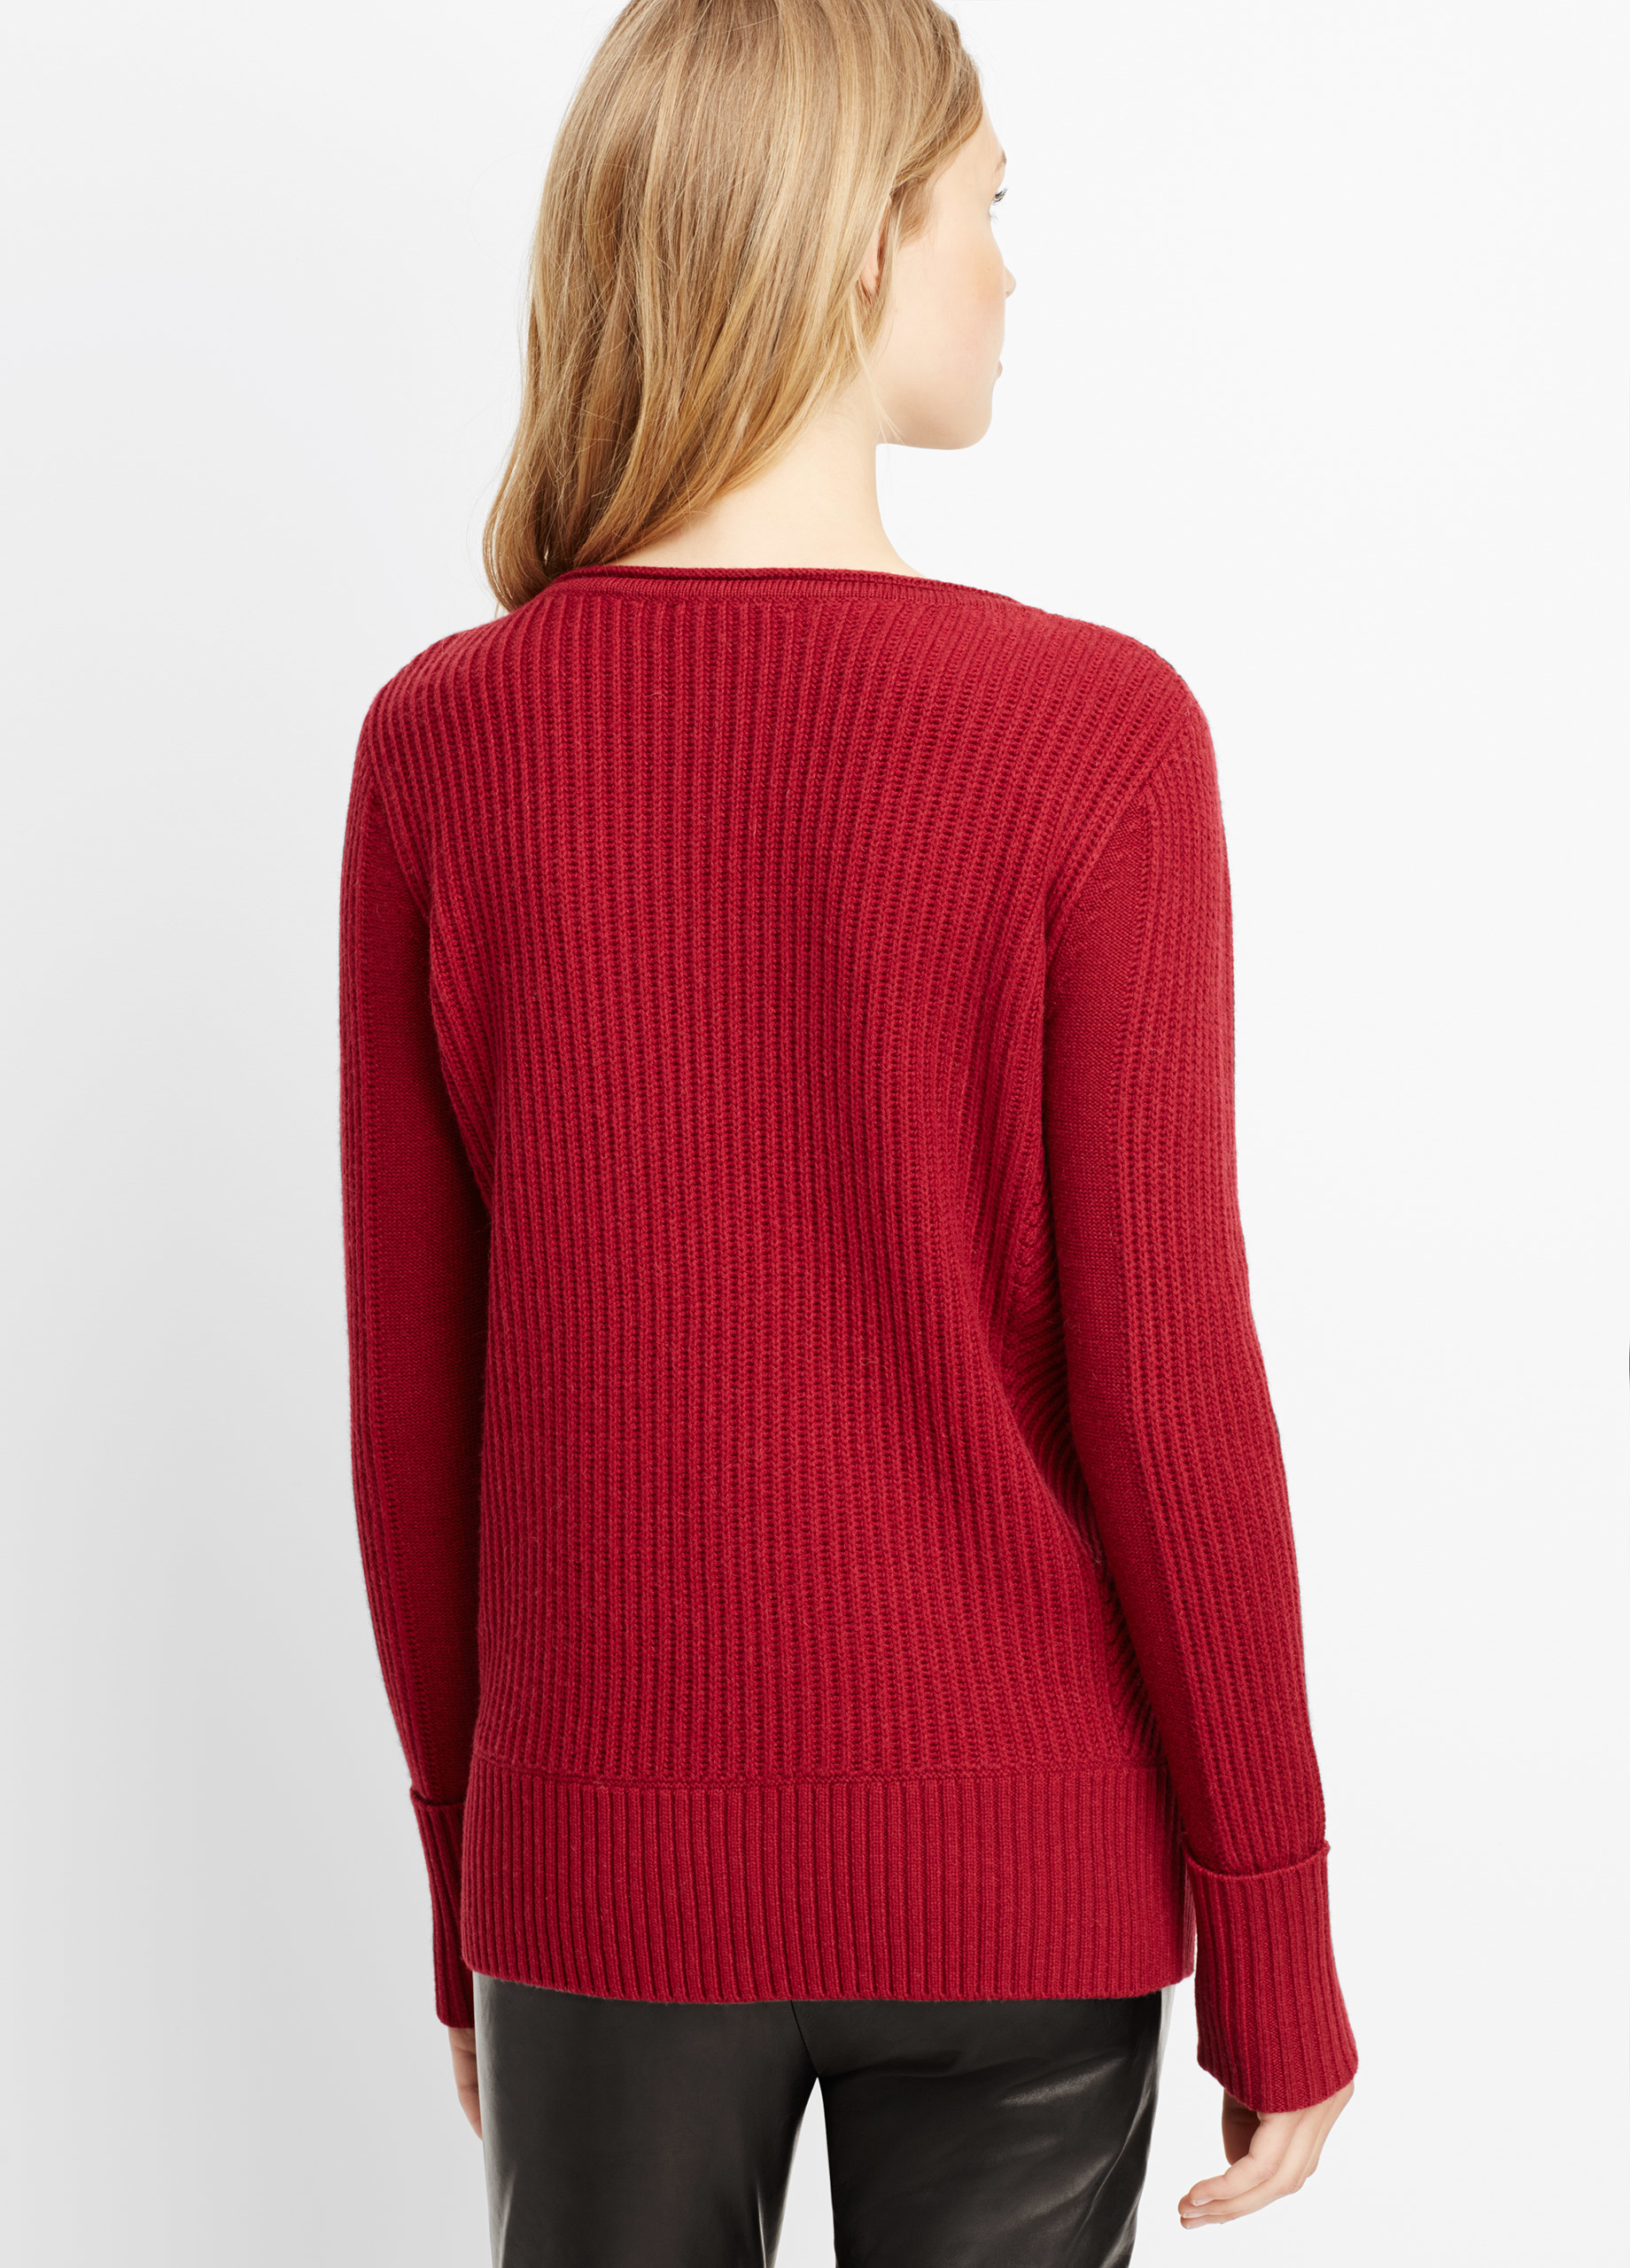 Vince Wool Cashmere Directional Rib Boatneck Sweater in Red | Lyst